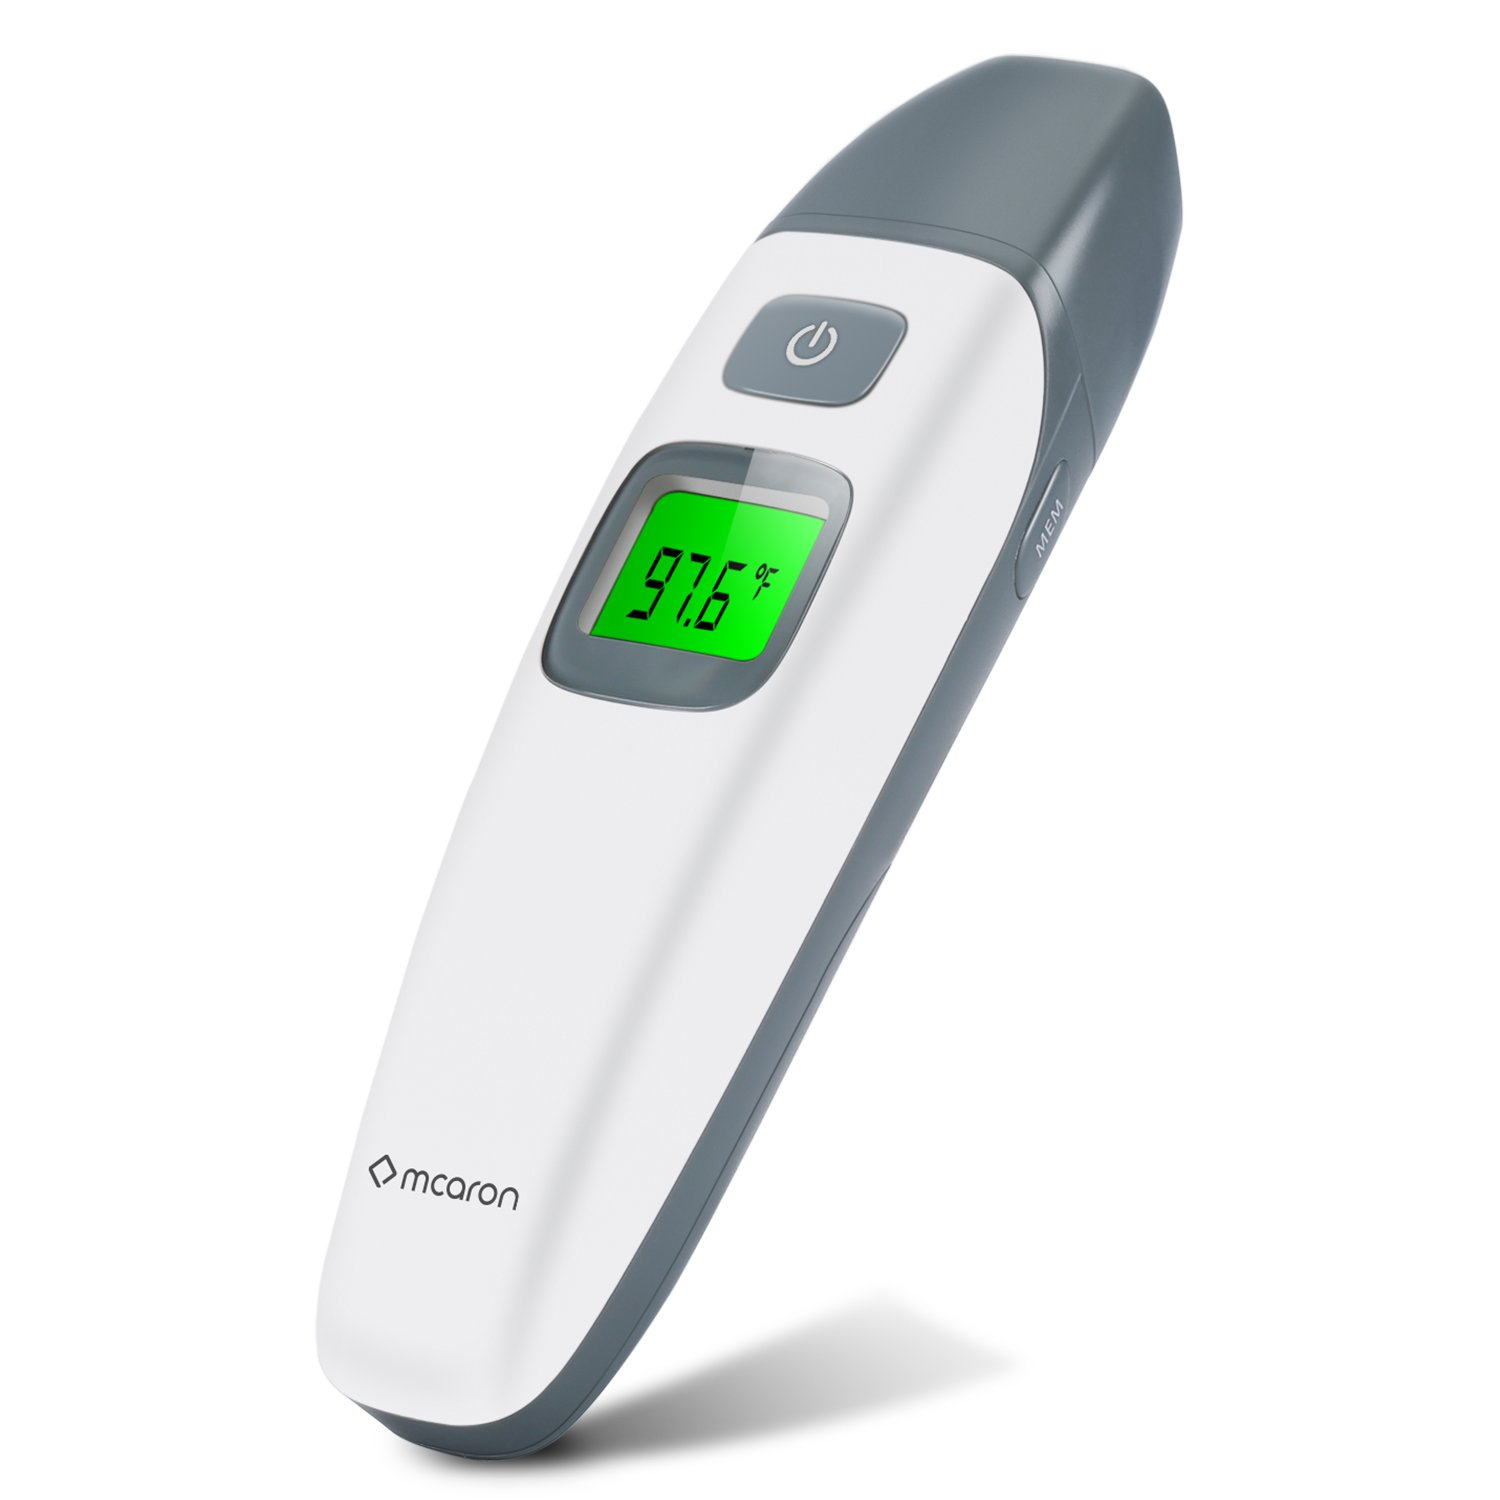 Mcaron Medical Forehead and Ear Thermometer for Baby, Kids and Adults - Infrared Digital Thermometer with Fever Indicator - CE and FDA Approved